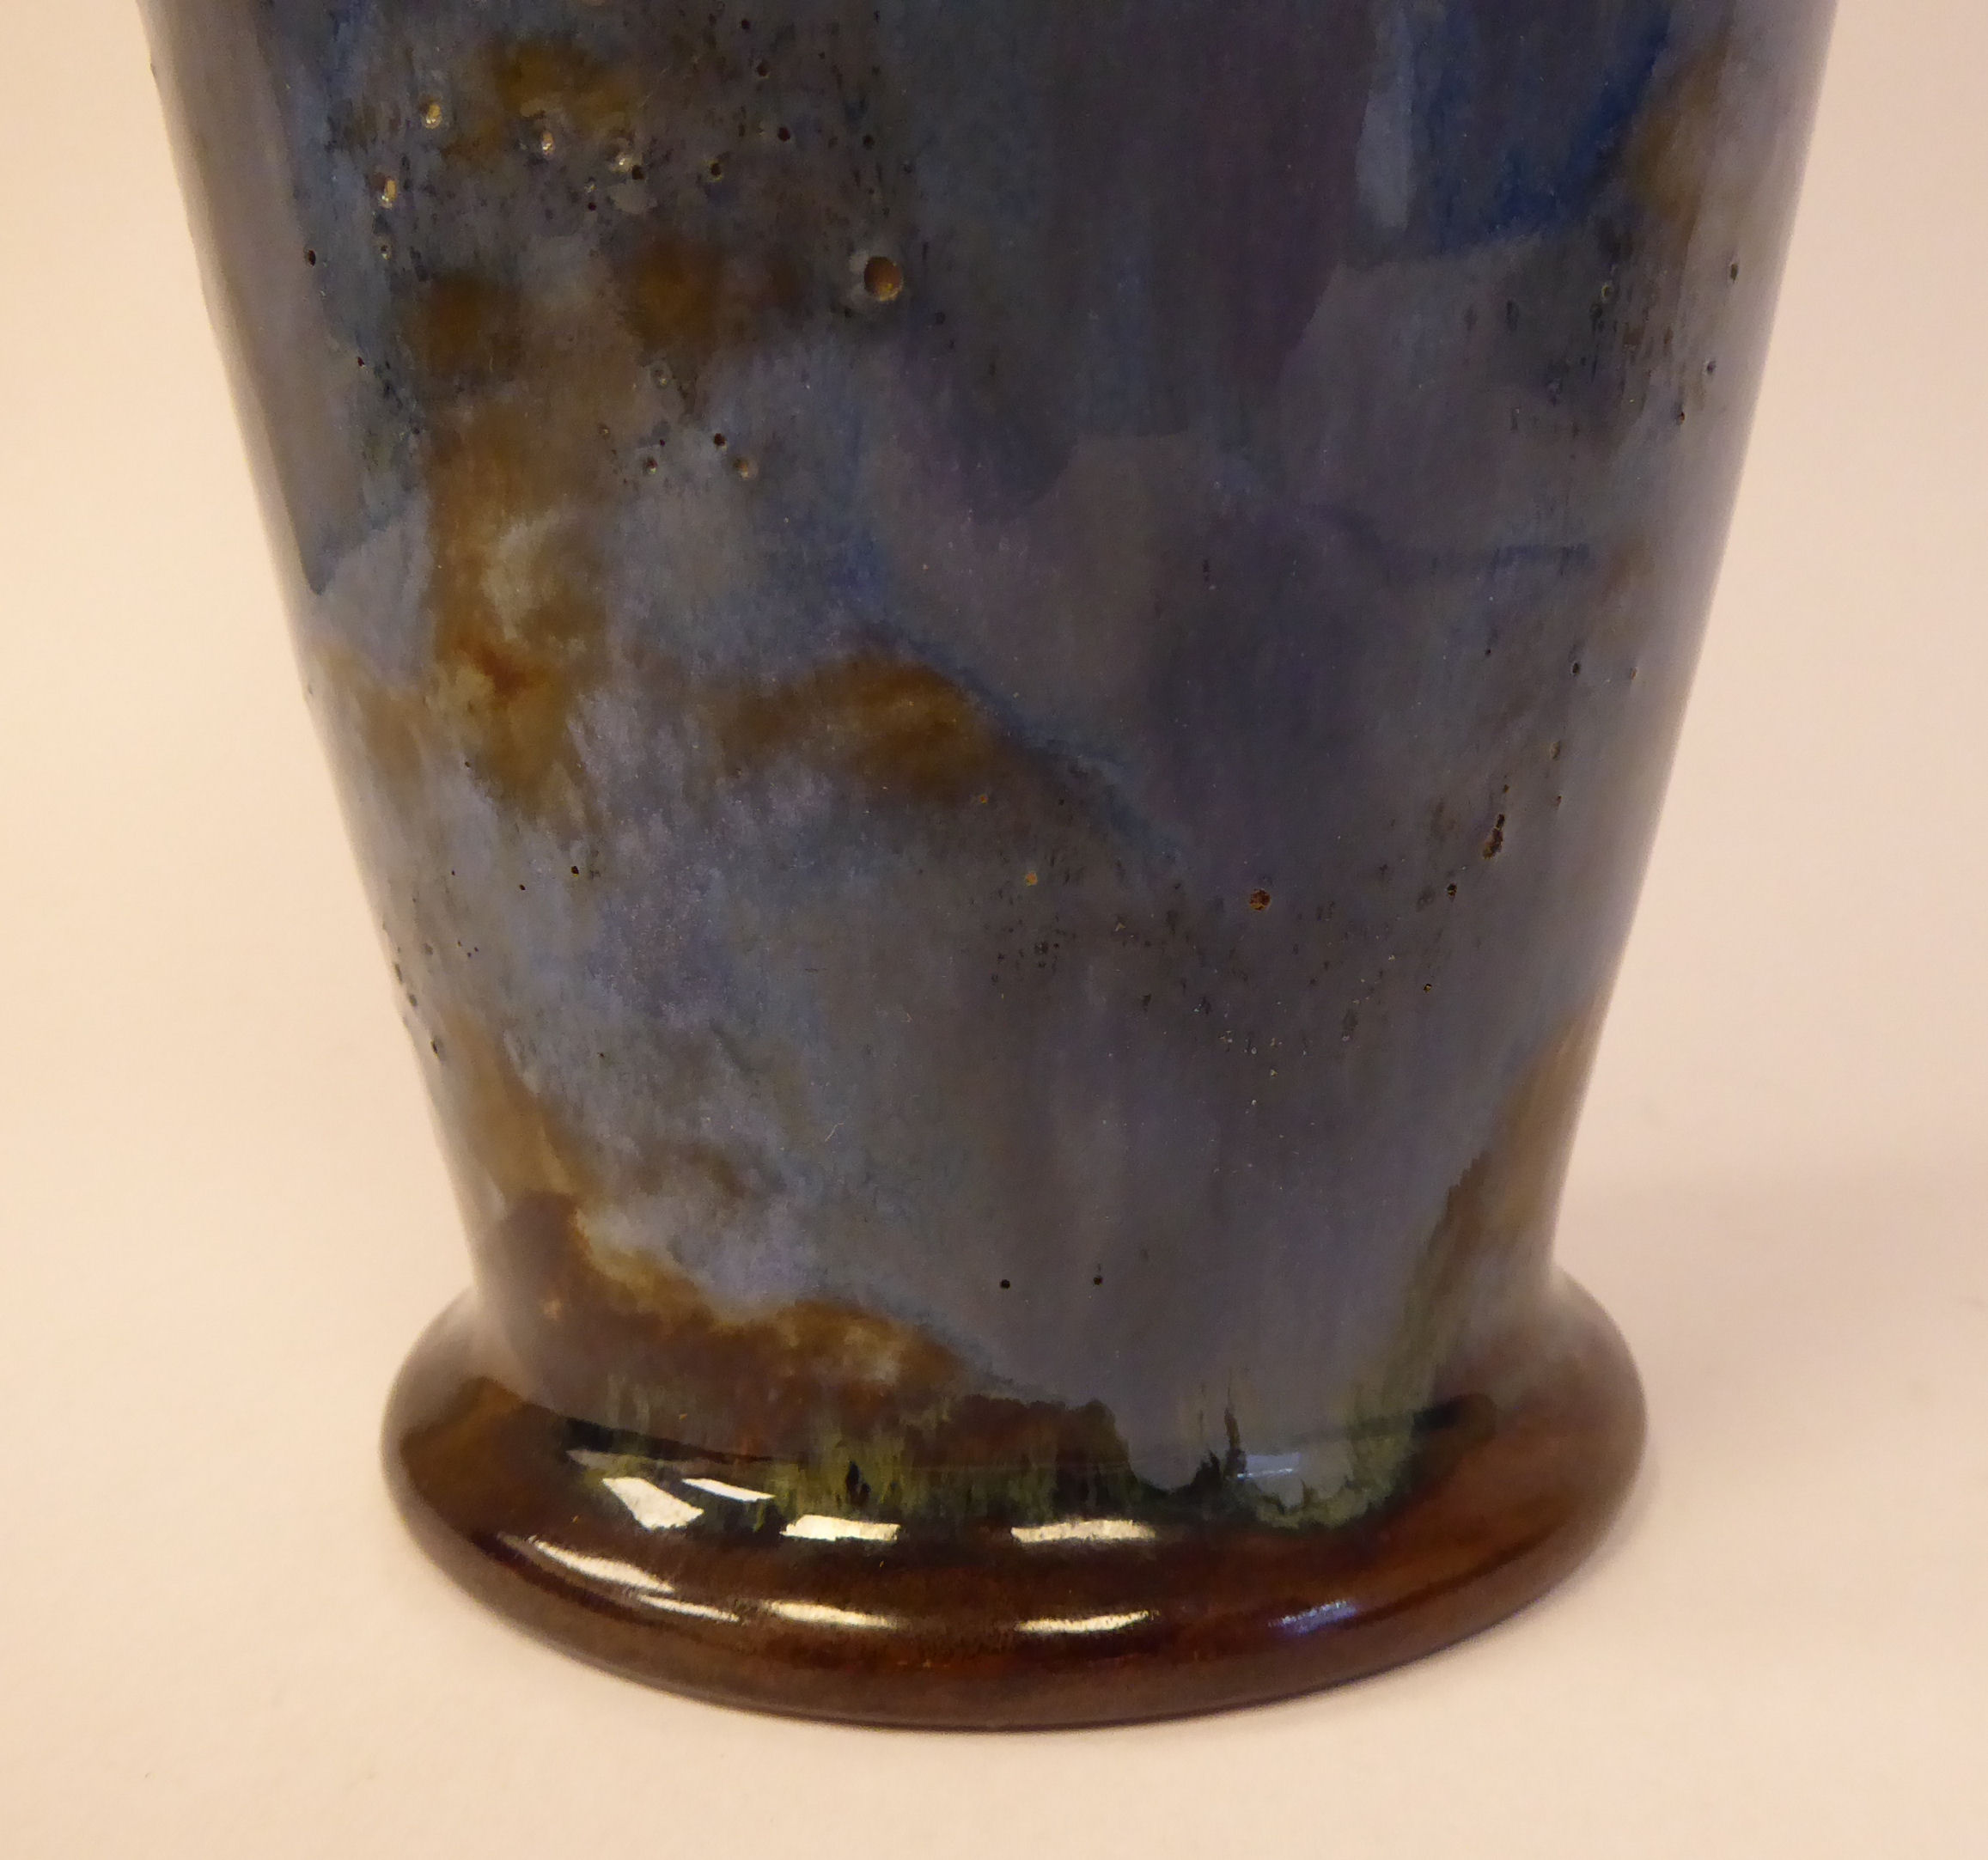 Lot 2 - An early 20thC Royal Doulton sponged blue, green and white glazed stoneware vase of slender,